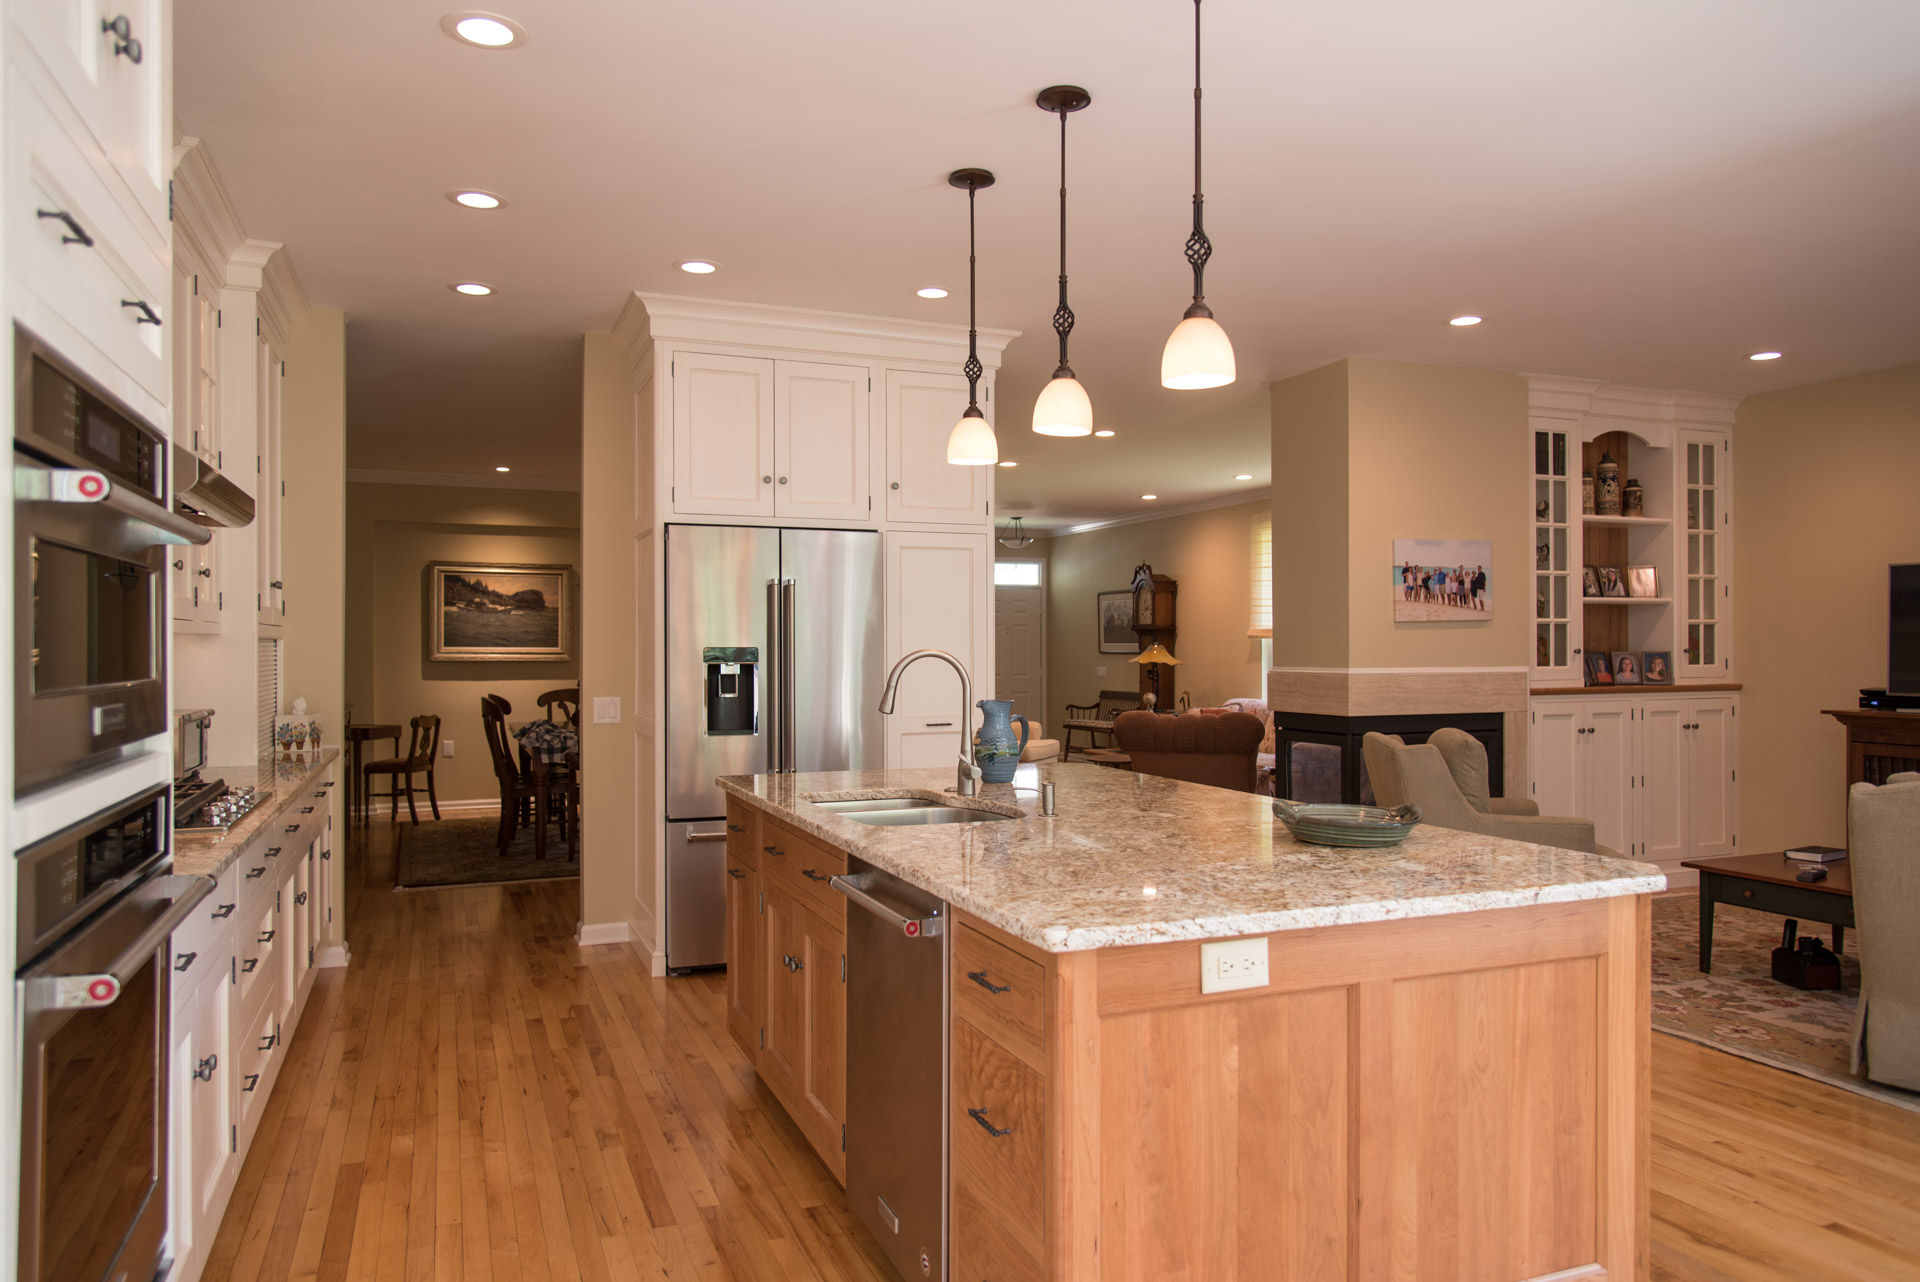 Kitchen Cabinets West Chester Pa Sbiroregon Org